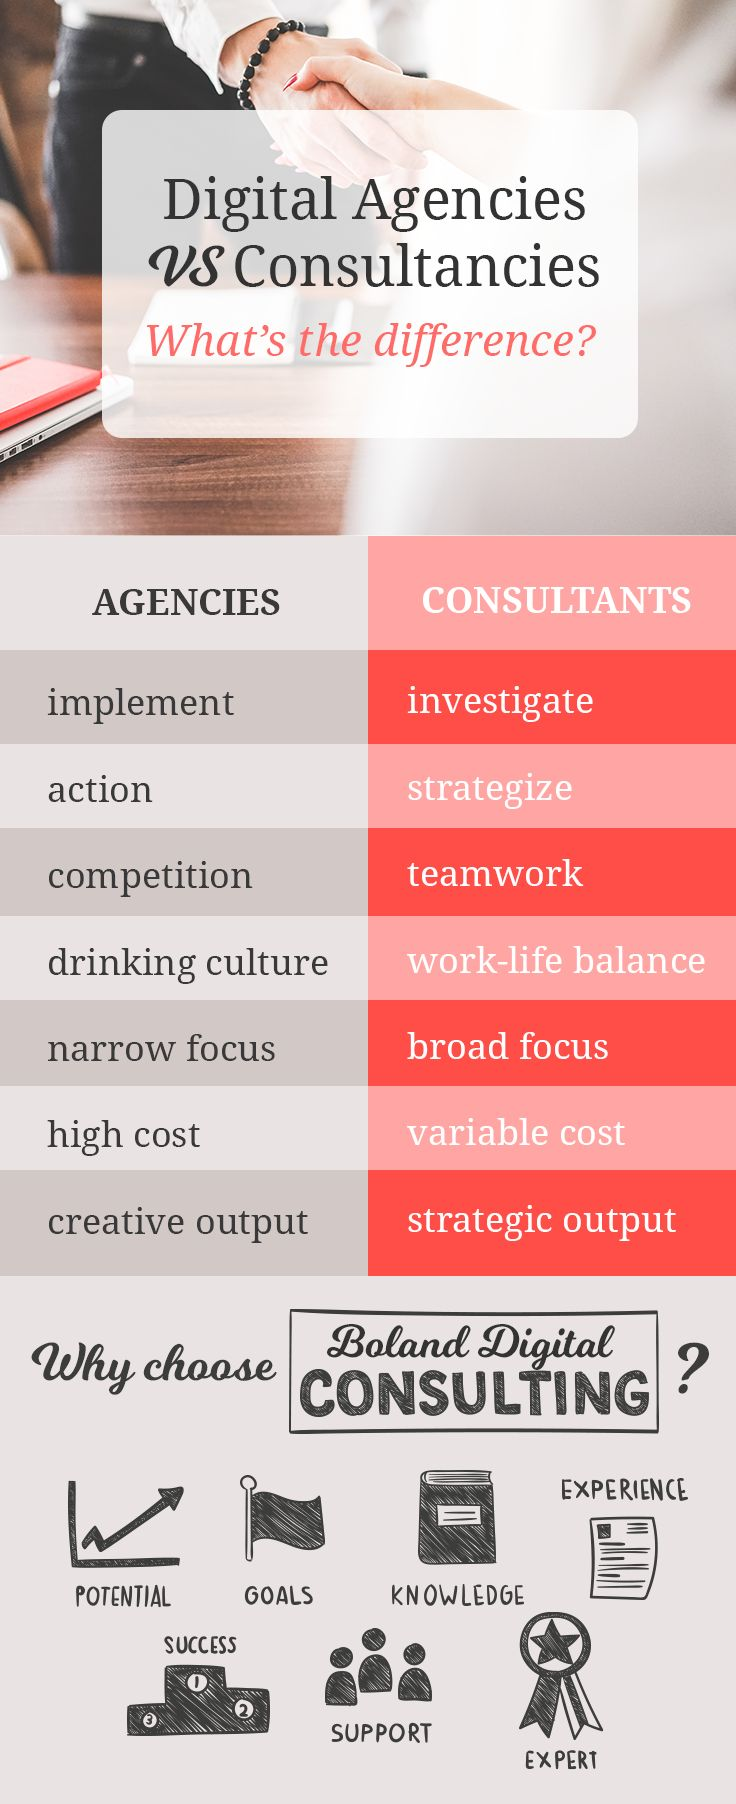 Digital agencies vs consultancies: What's the difference?